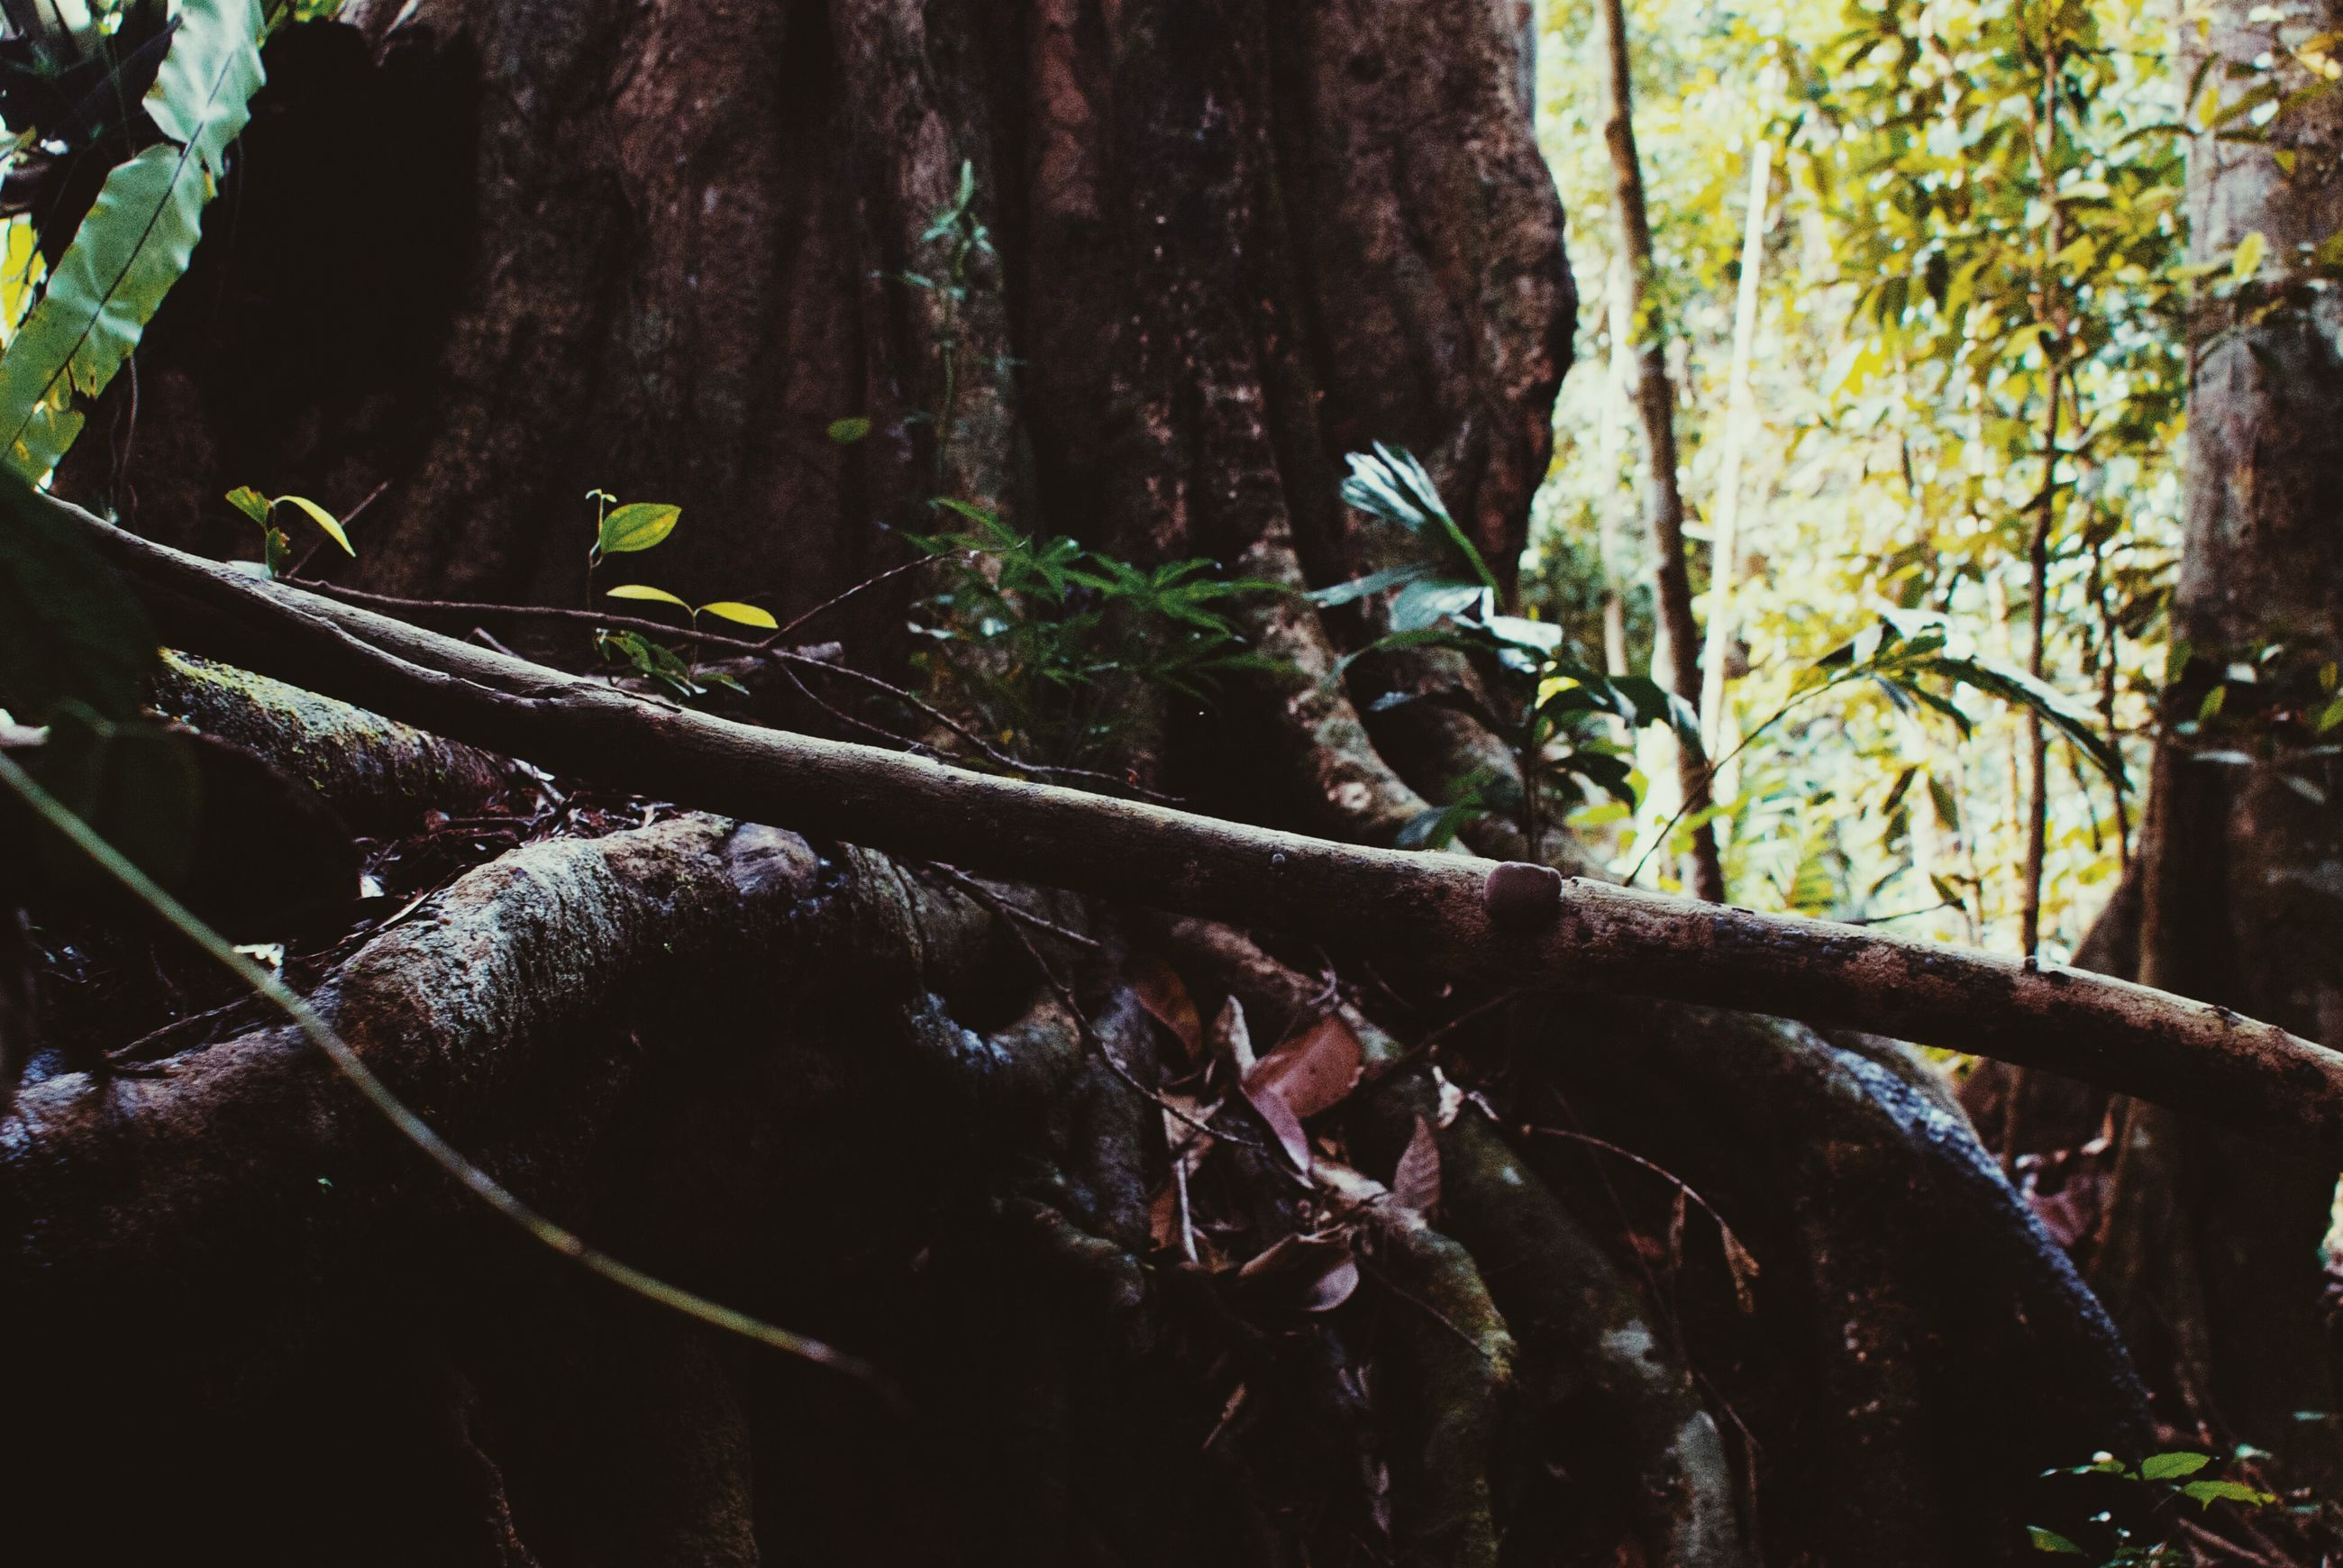 tree, animal themes, forest, animals in the wild, wildlife, branch, tree trunk, nature, one animal, wood - material, growth, outdoors, day, close-up, no people, plant, low angle view, beauty in nature, selective focus, log